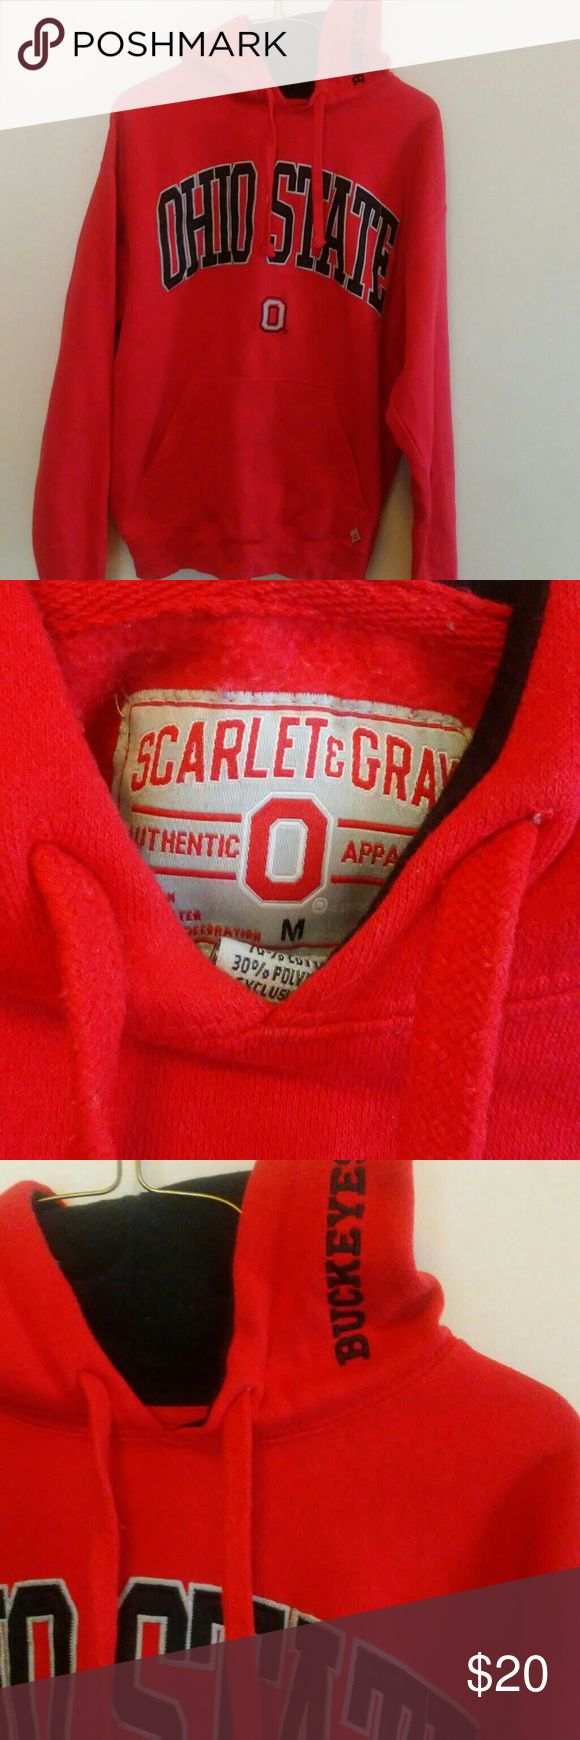 💥OHIO STATE HOODIE💥 Excellent condition..scarlet and grey apparel..has buckeyes on hood posted in pic scarlet and grey Other